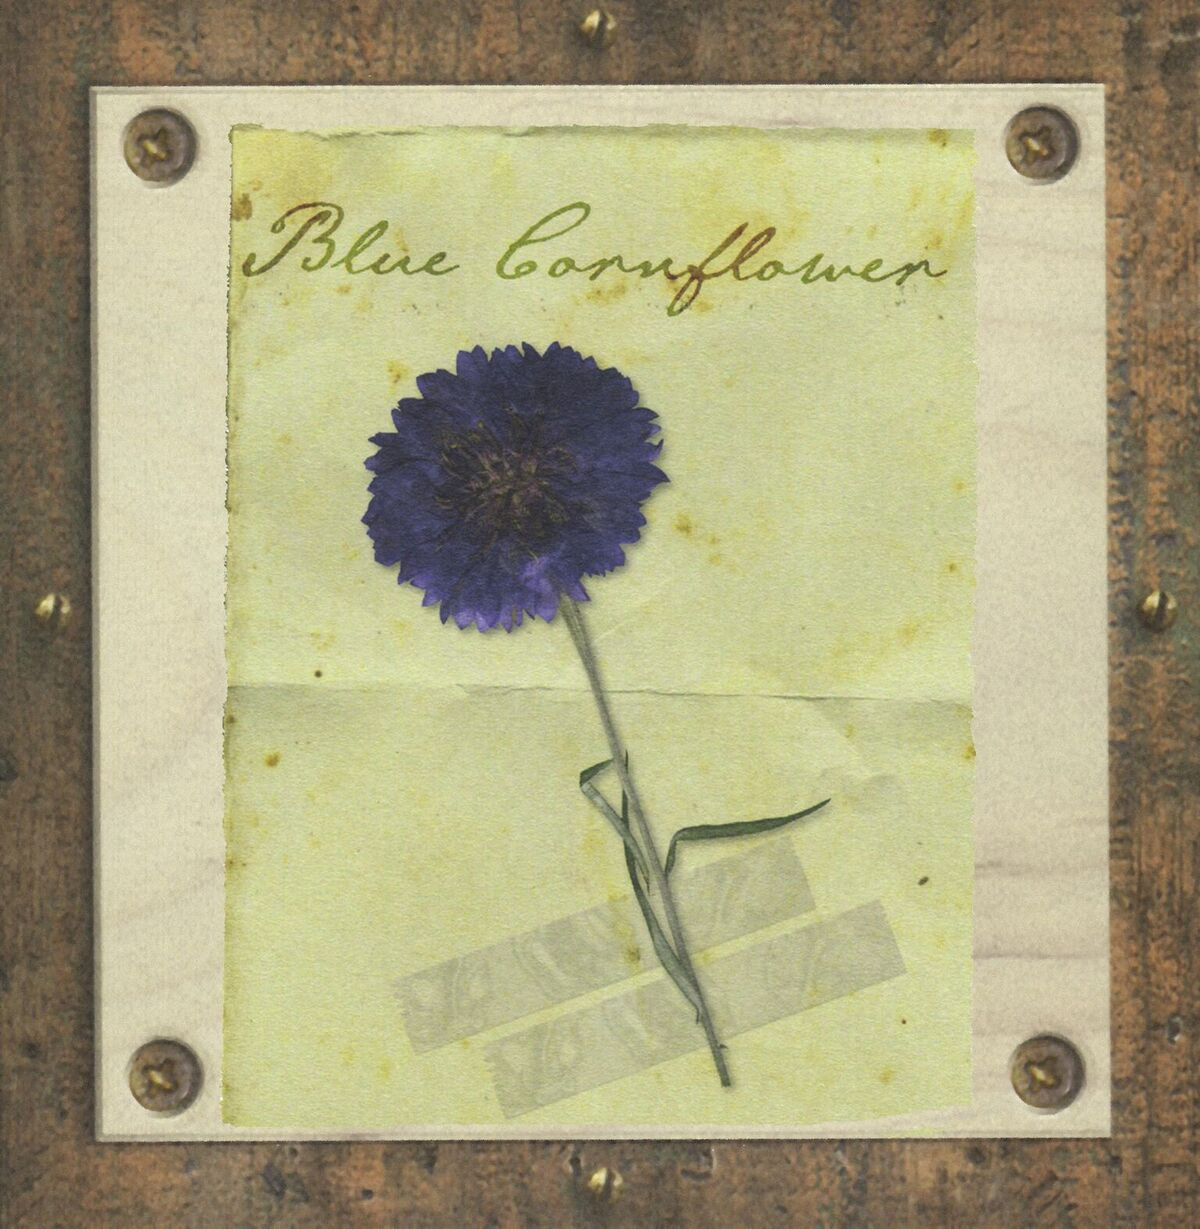 Blue cornflower pressed and framed. About Ruth Wade